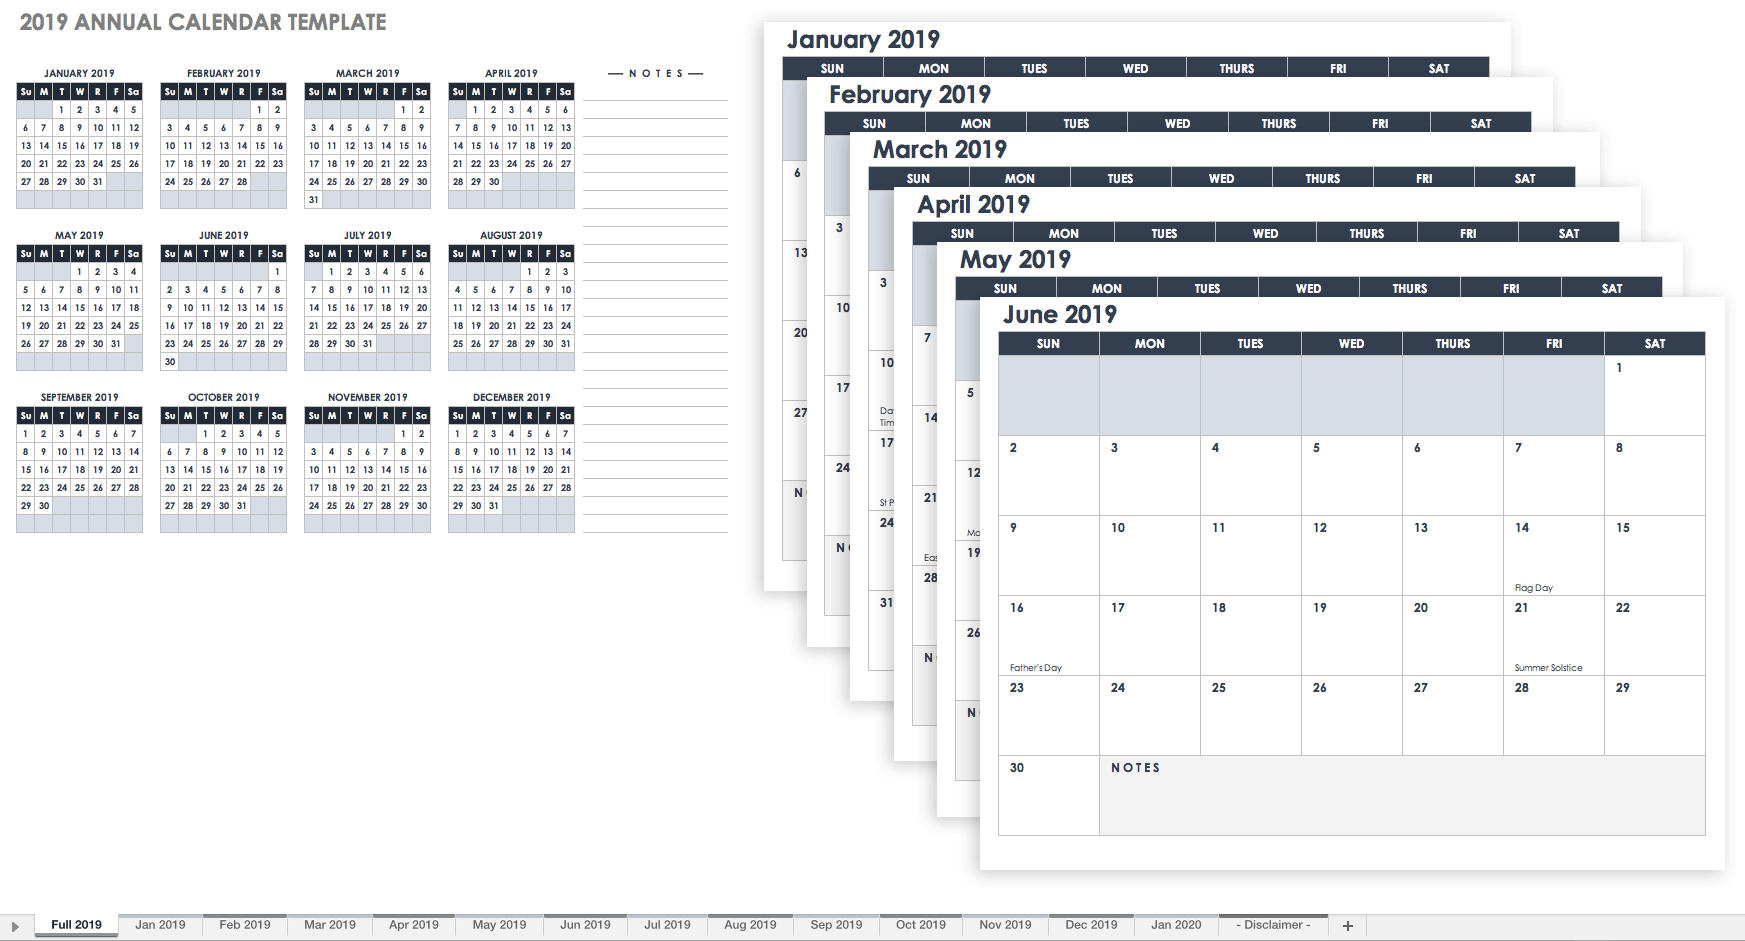 15 Free Monthly Calendar Templates | Smartsheet intended for Calendar To Type On 2019 - 2020